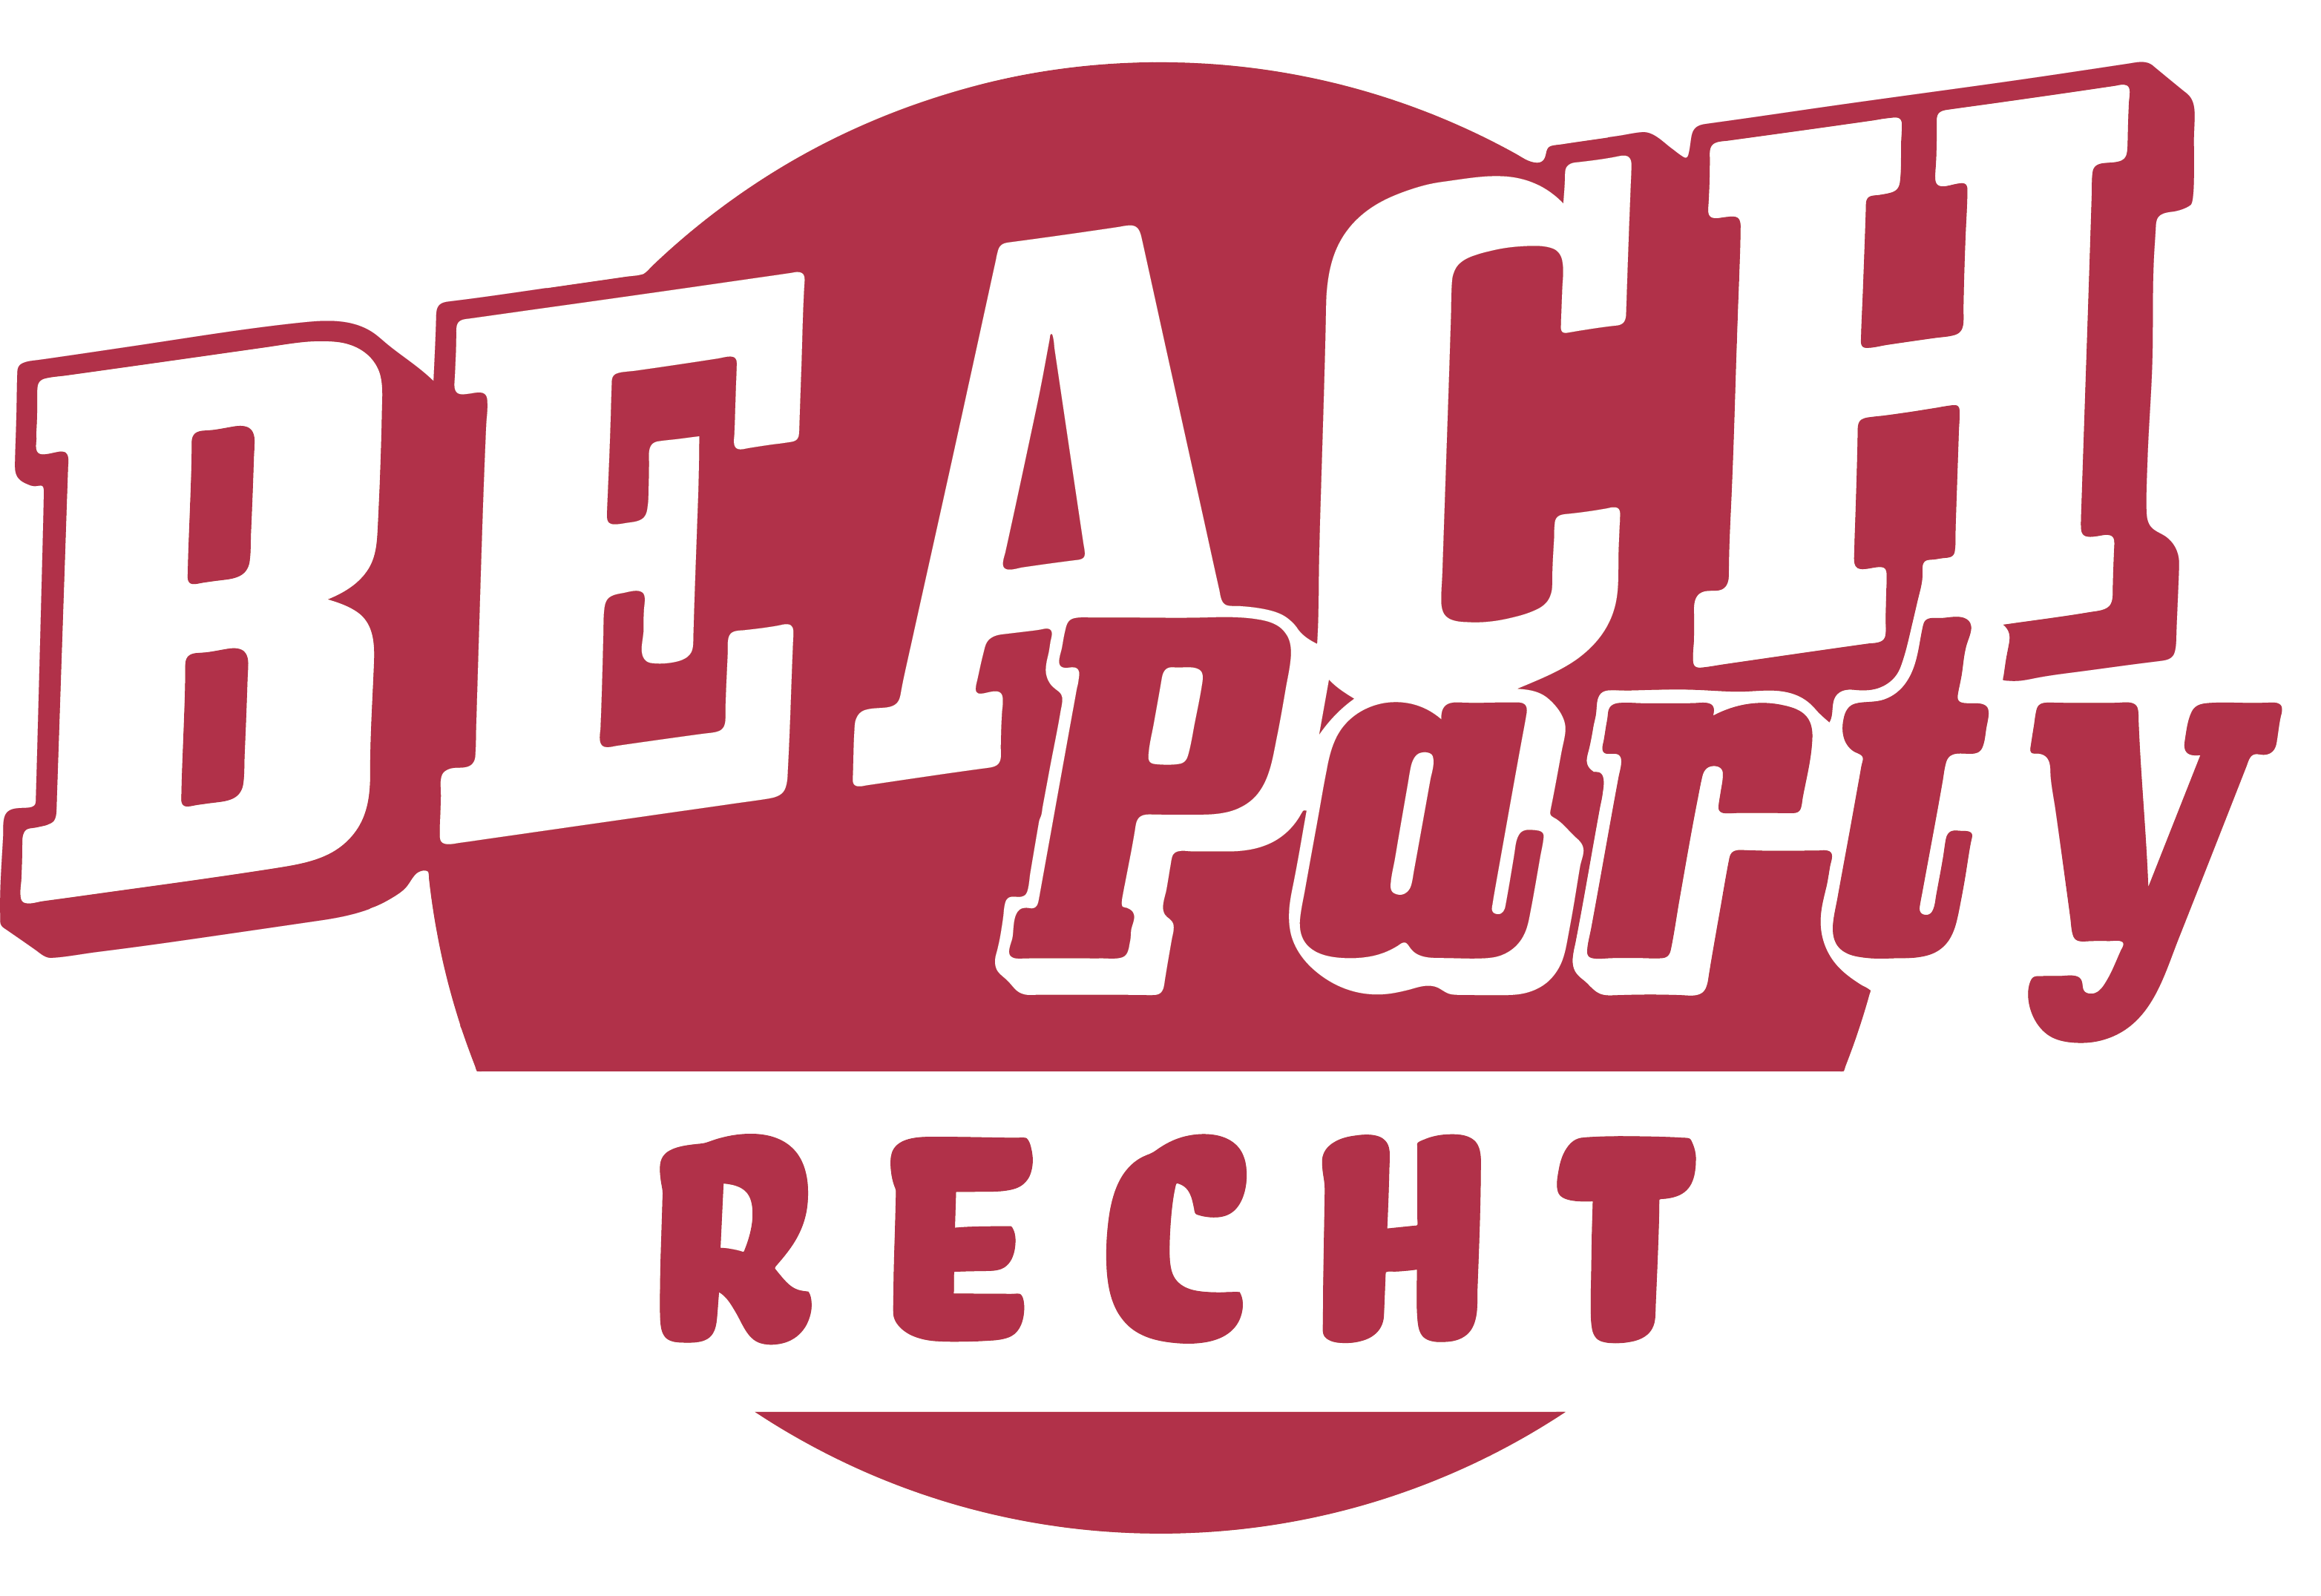 Beach Party Recht